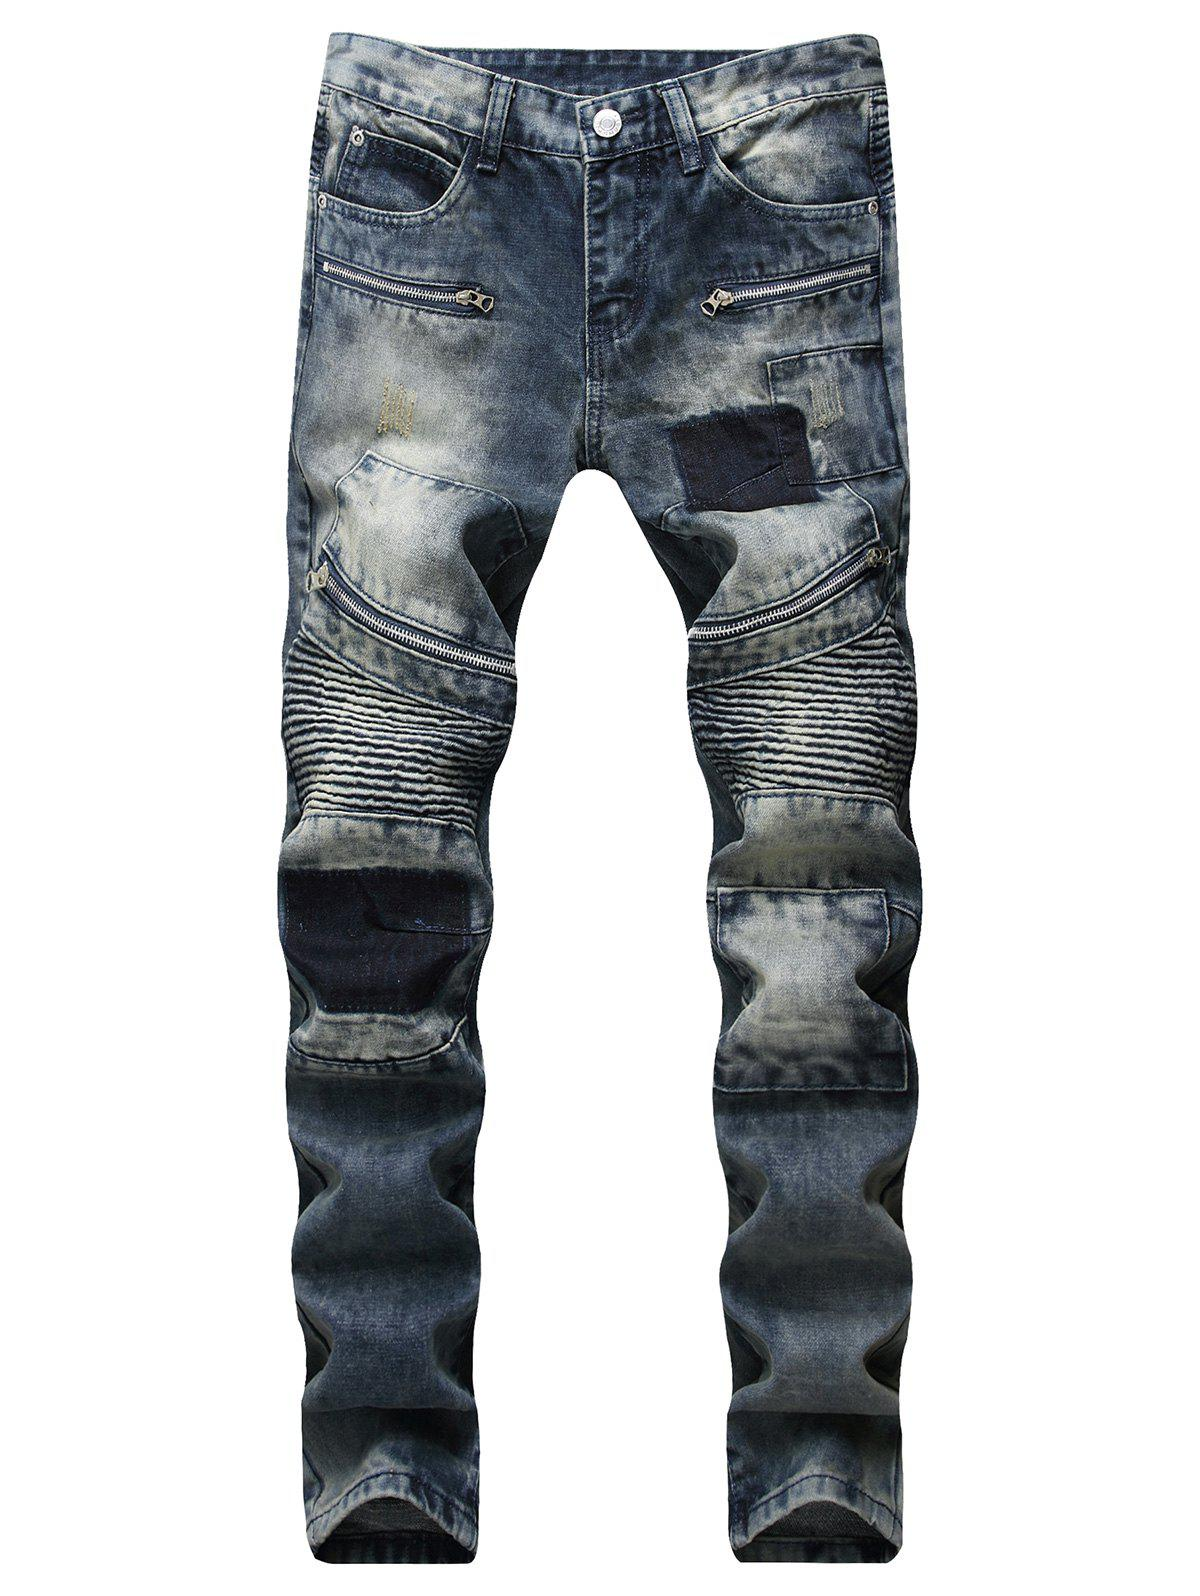 Affordable Casual Jeans with Zipper Decoration